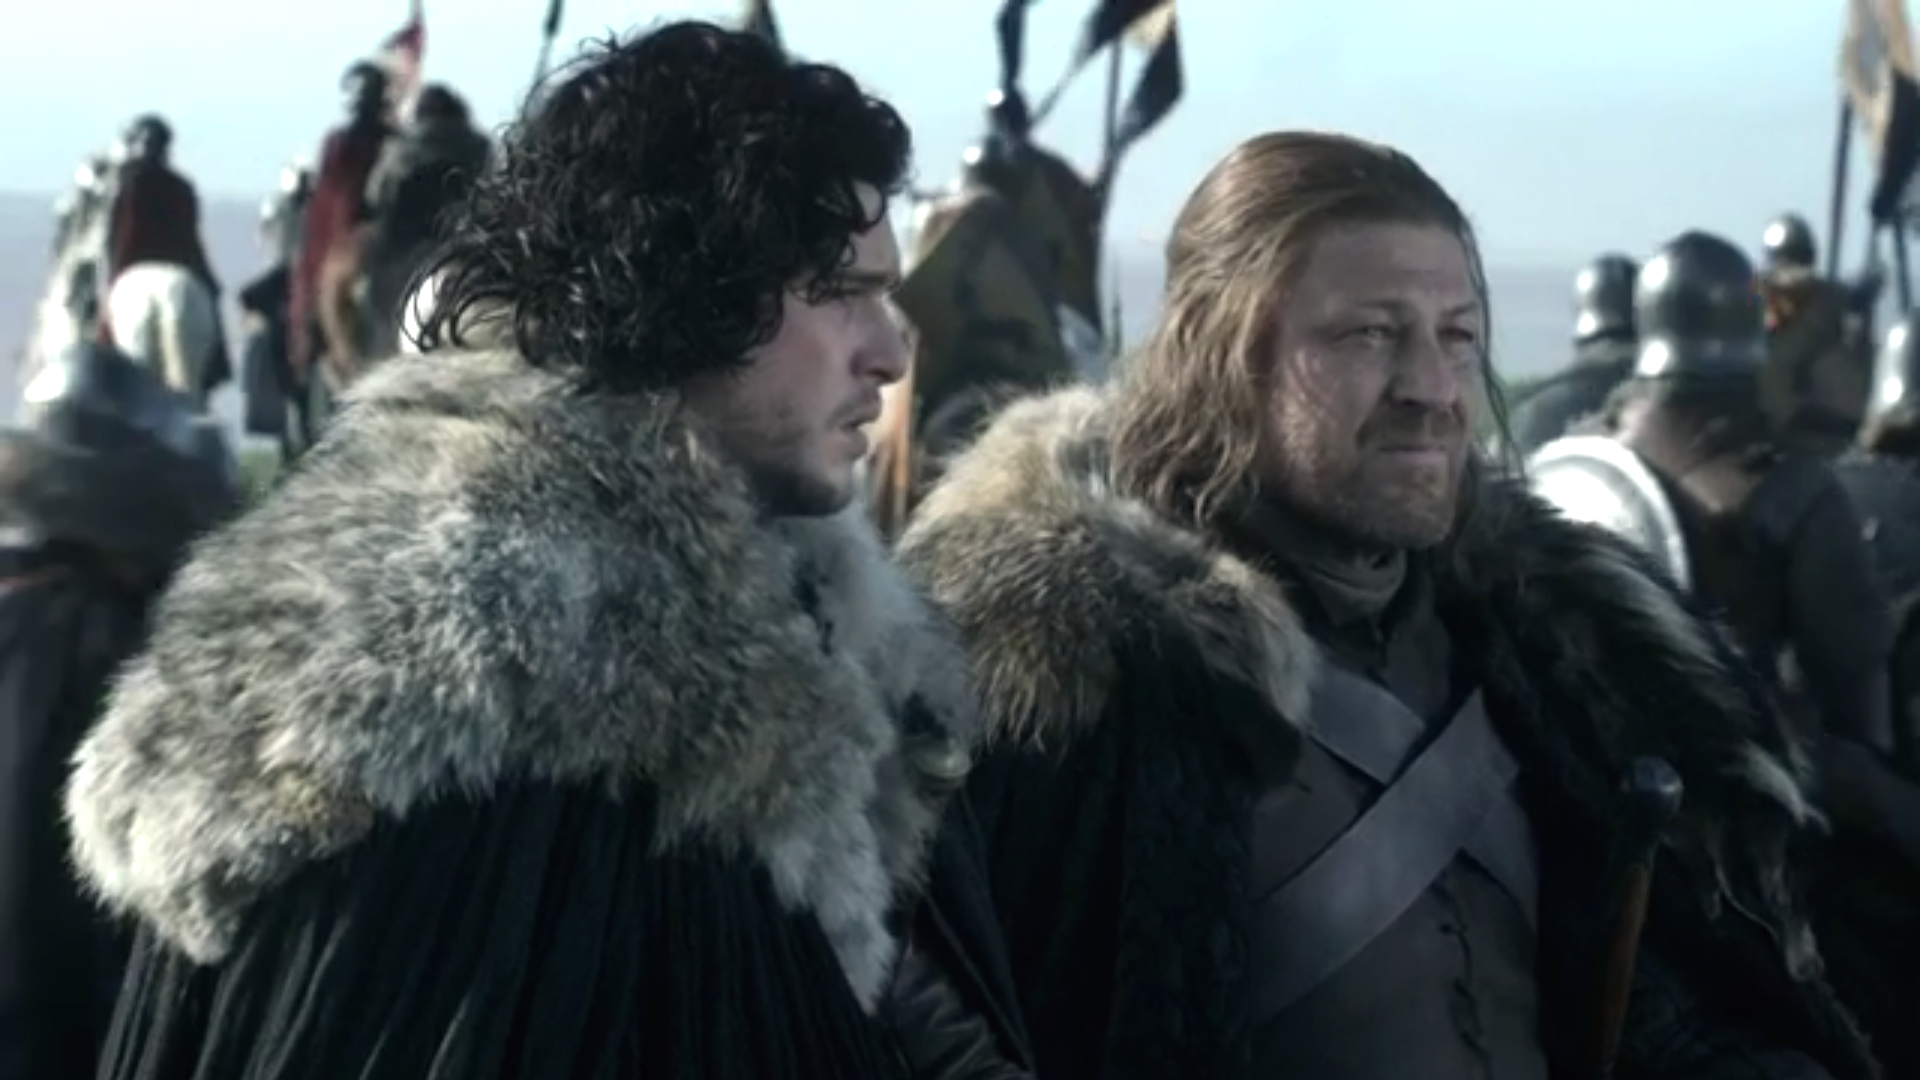 Kit Harrington and Sean Bean in Game of Thrones.